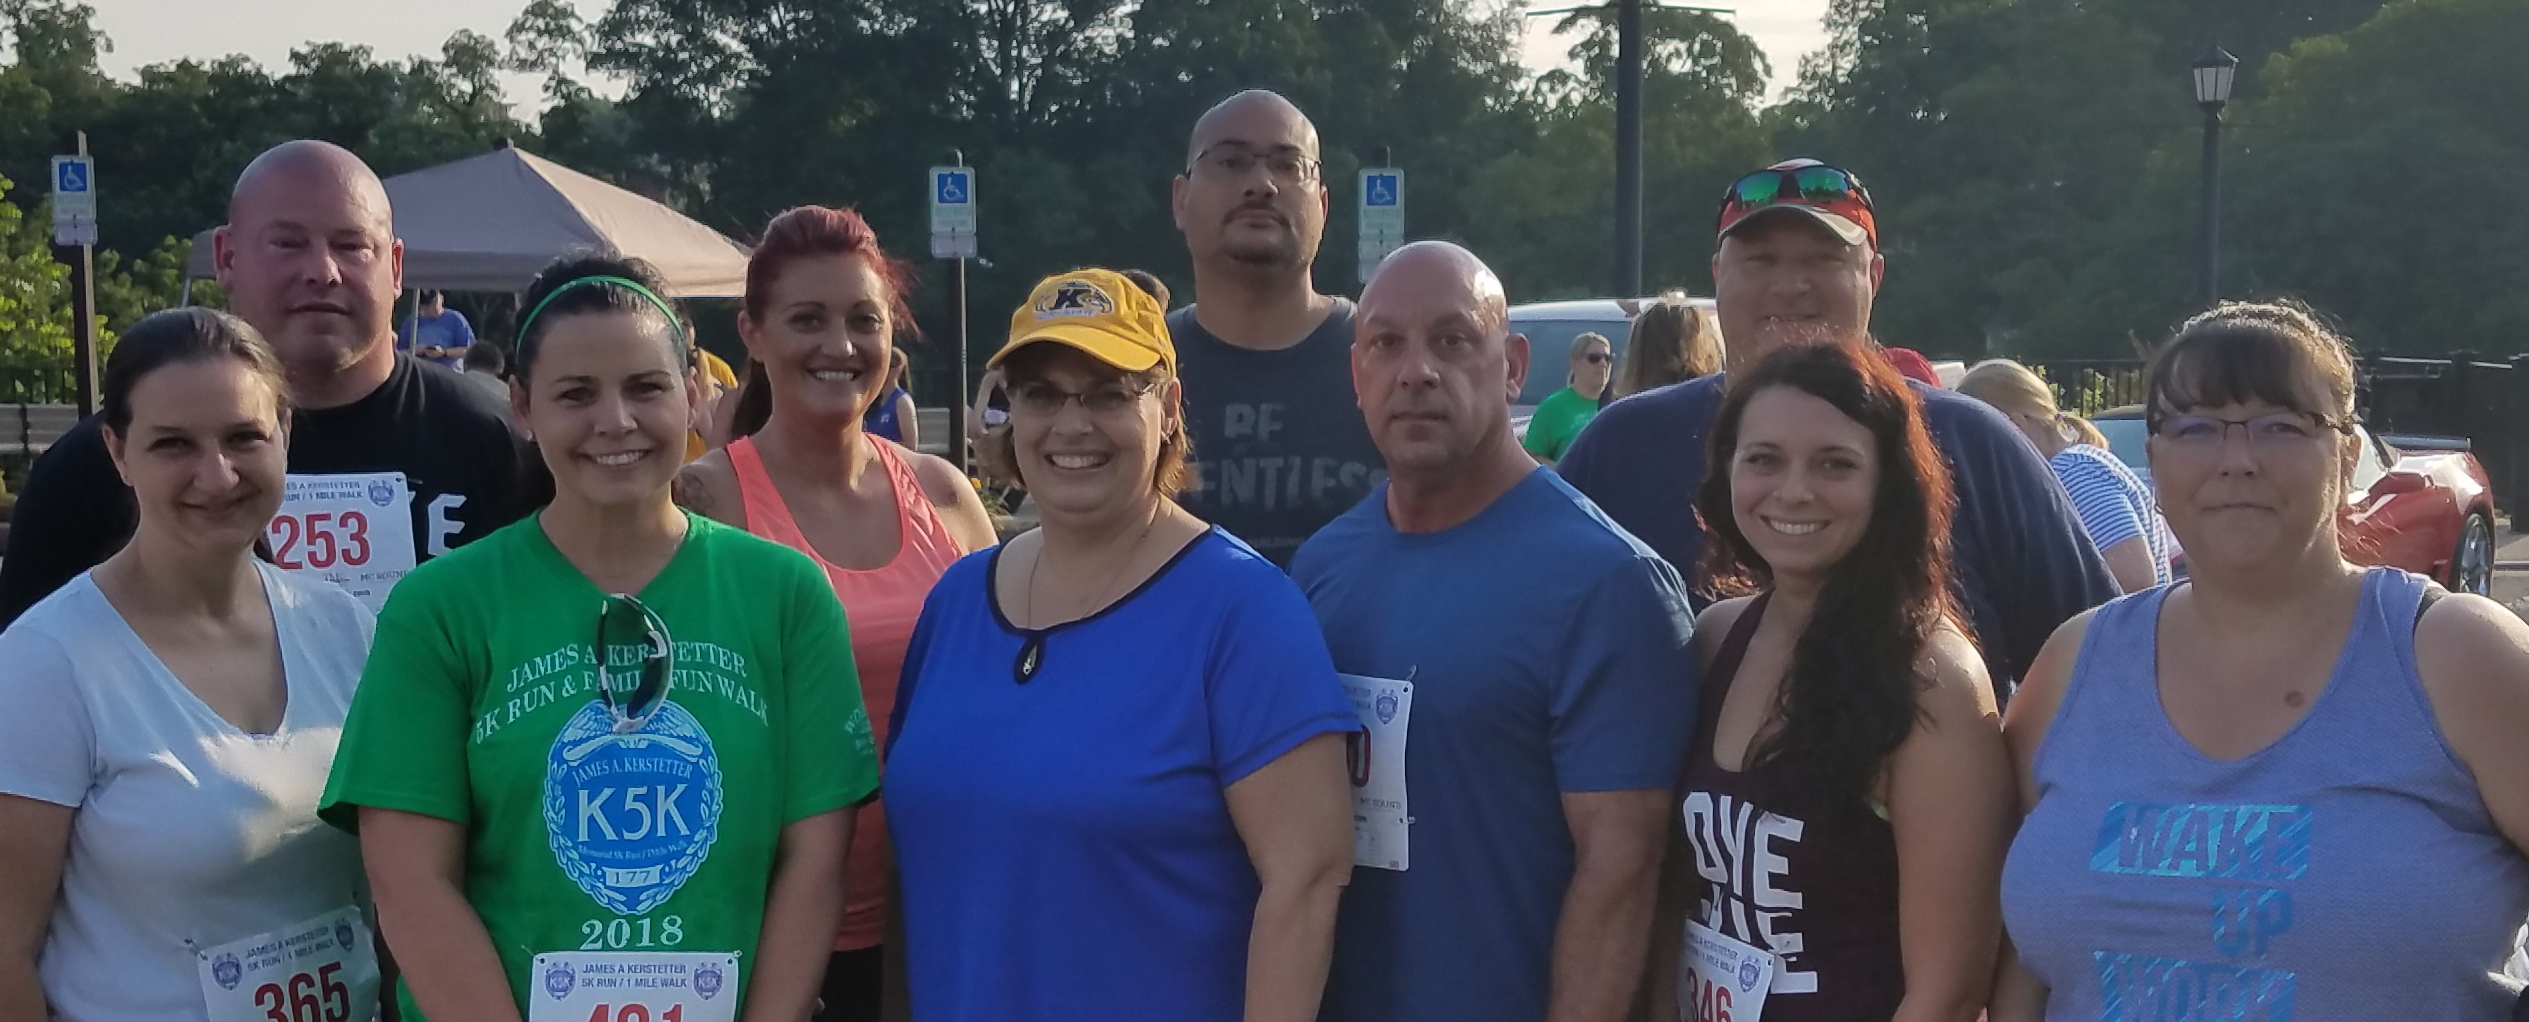 LorCI and the APA Participates in 5k Kerstetter Race